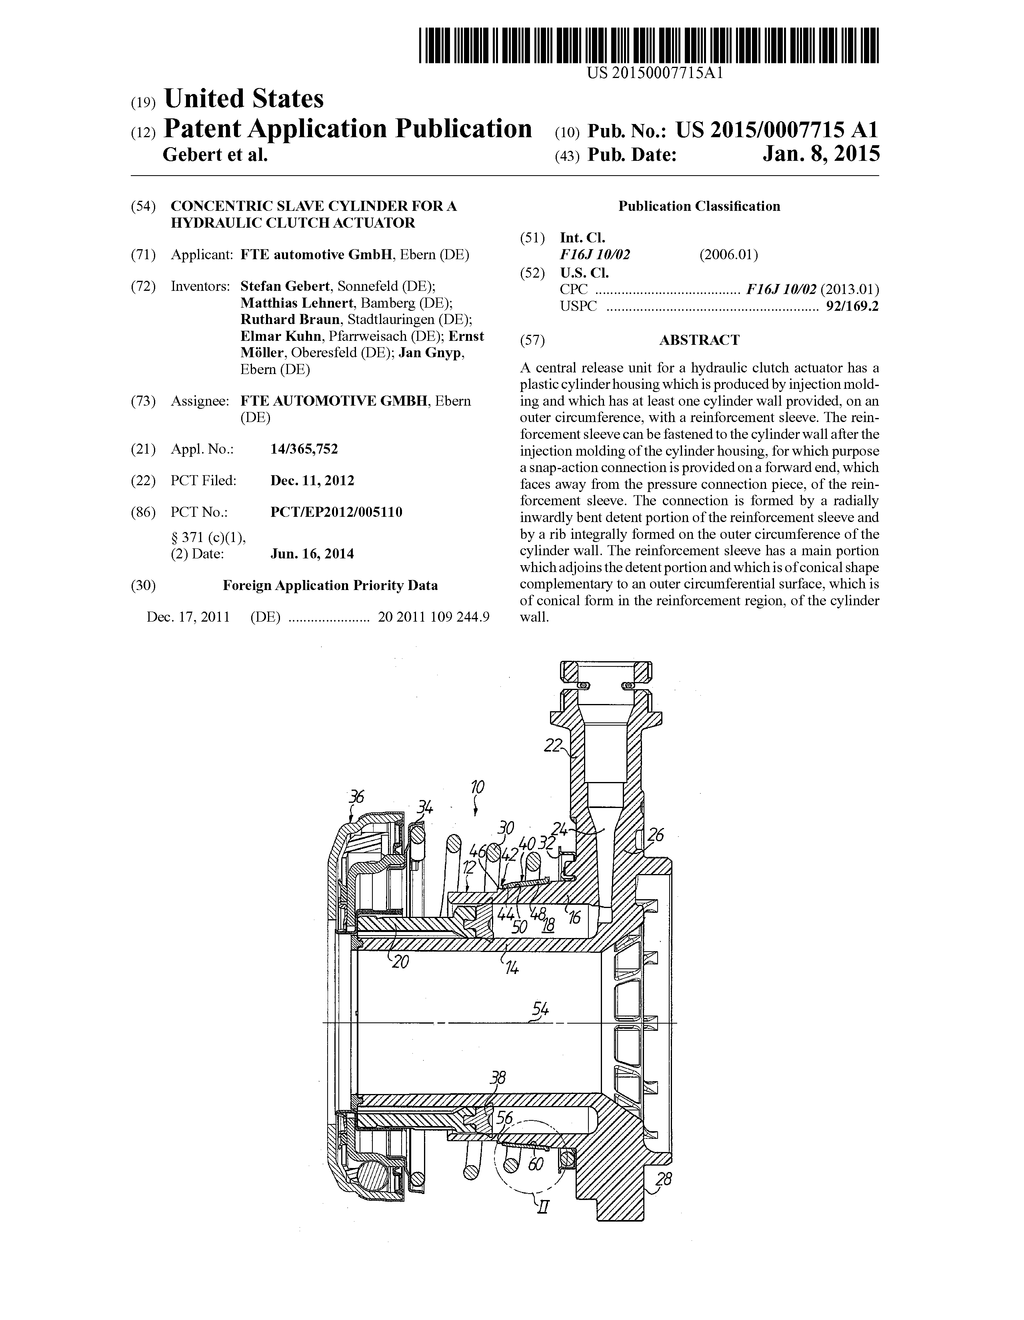 concentric slave cylinder for a hydraulic clutch actuator diagram Lt1 Clutch Slave Cylinder Diagram concentric slave cylinder for a hydraulic clutch actuator diagram, schematic, and image 01